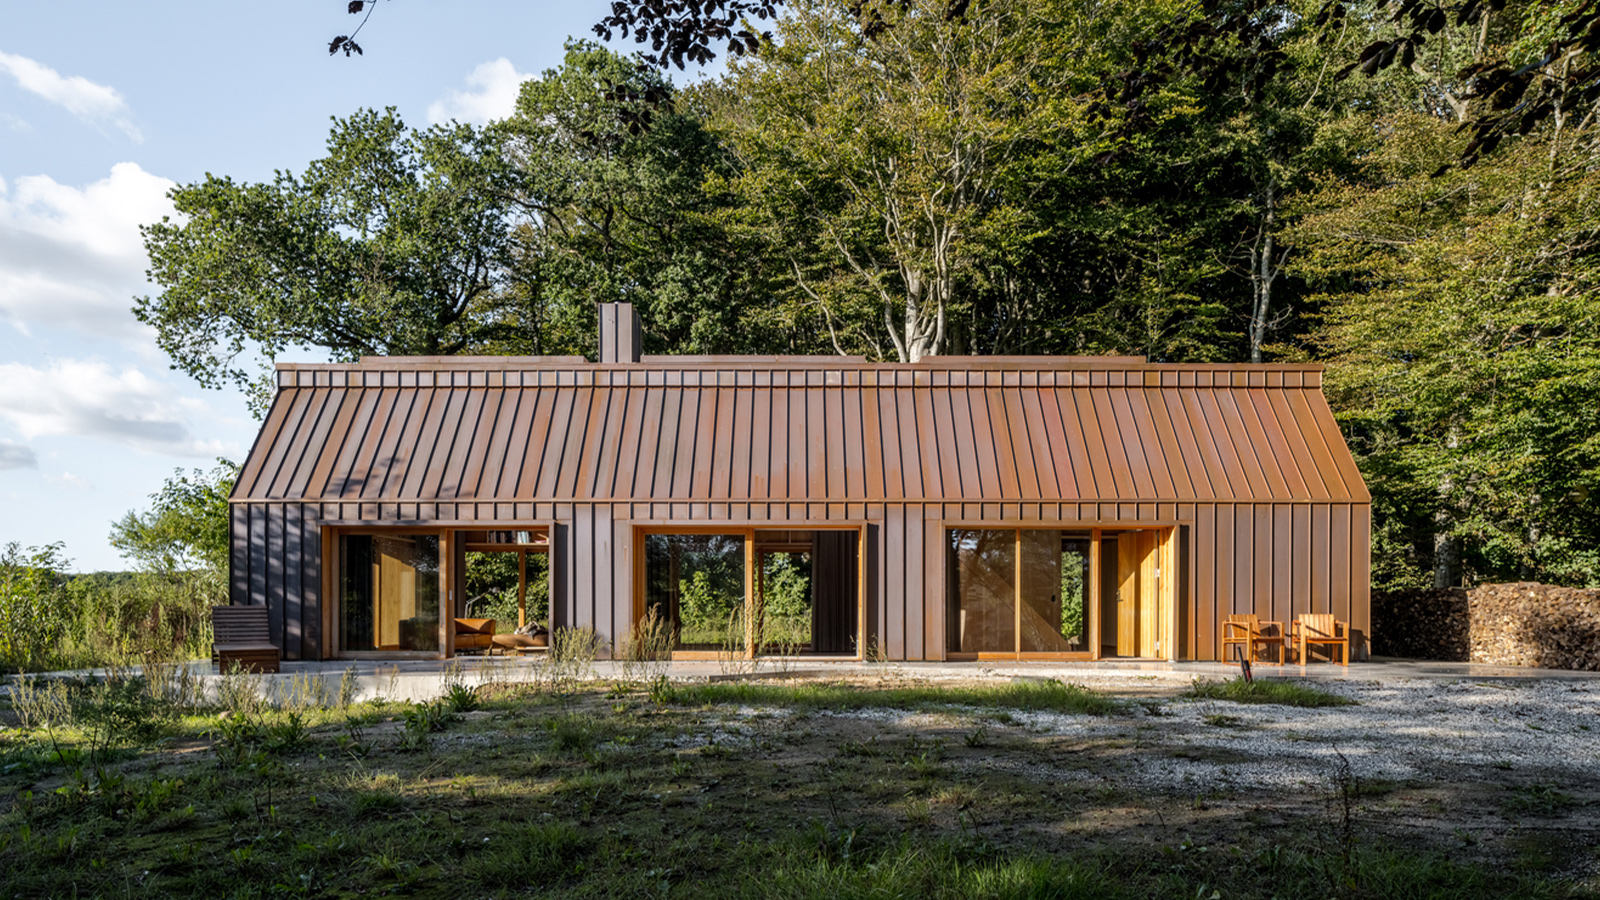 The Author's House by SLETH architects